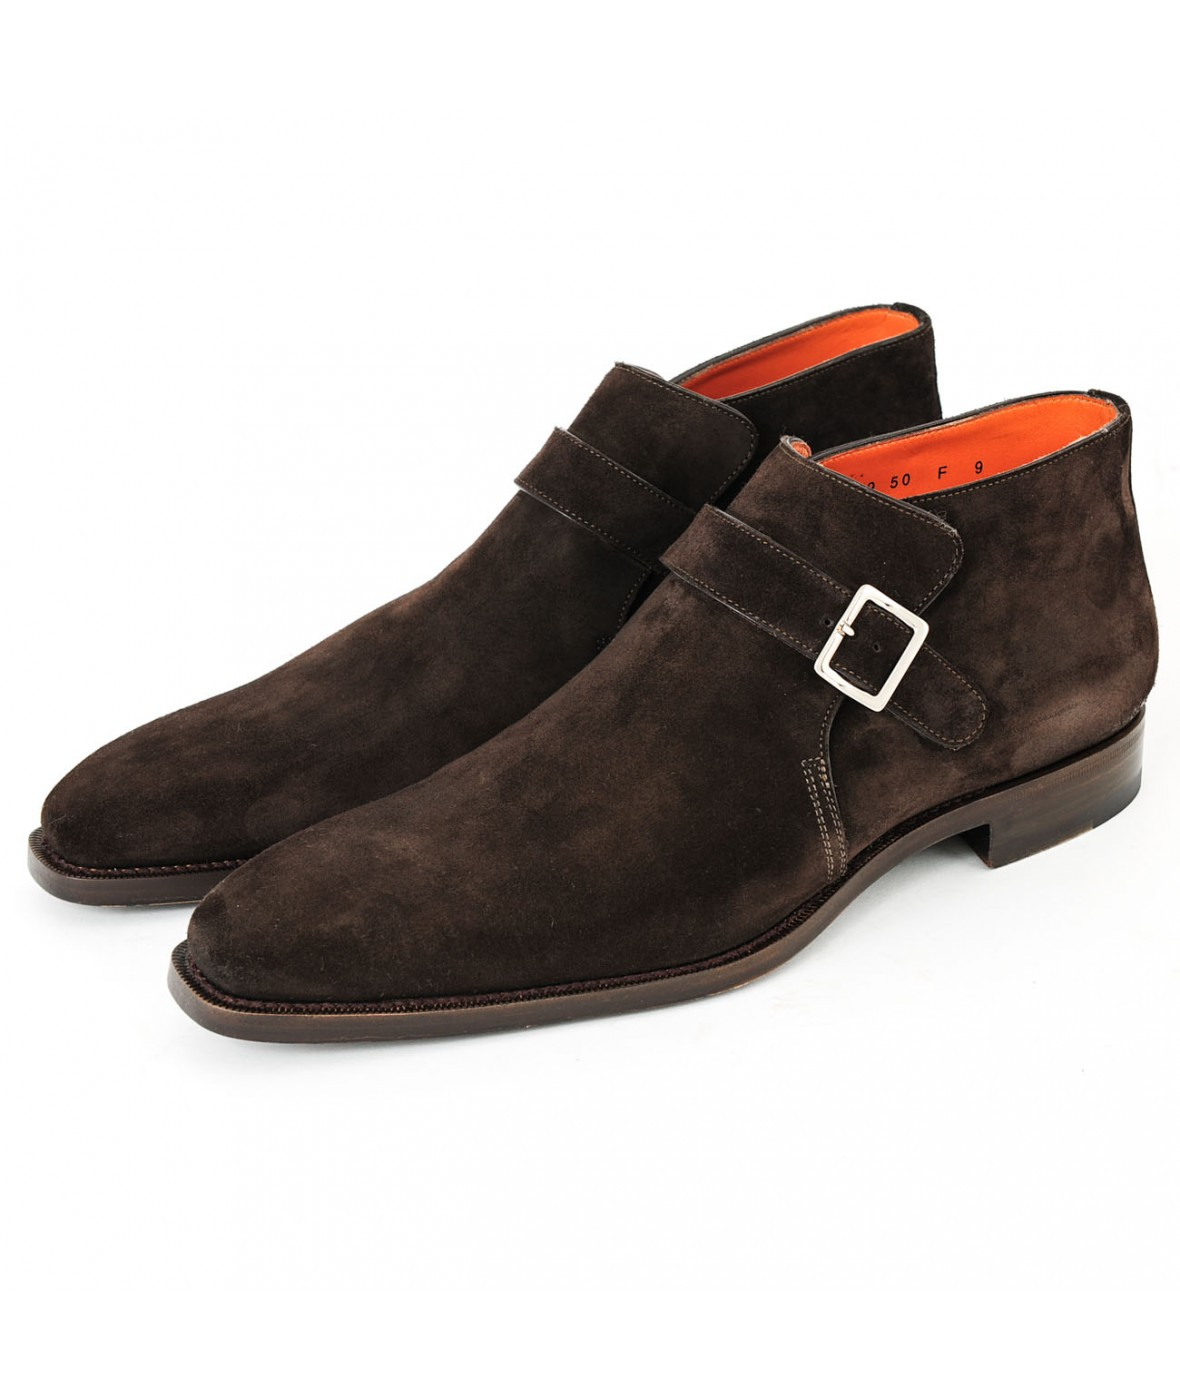 Santoni Tino (25024) For the end of December 2019